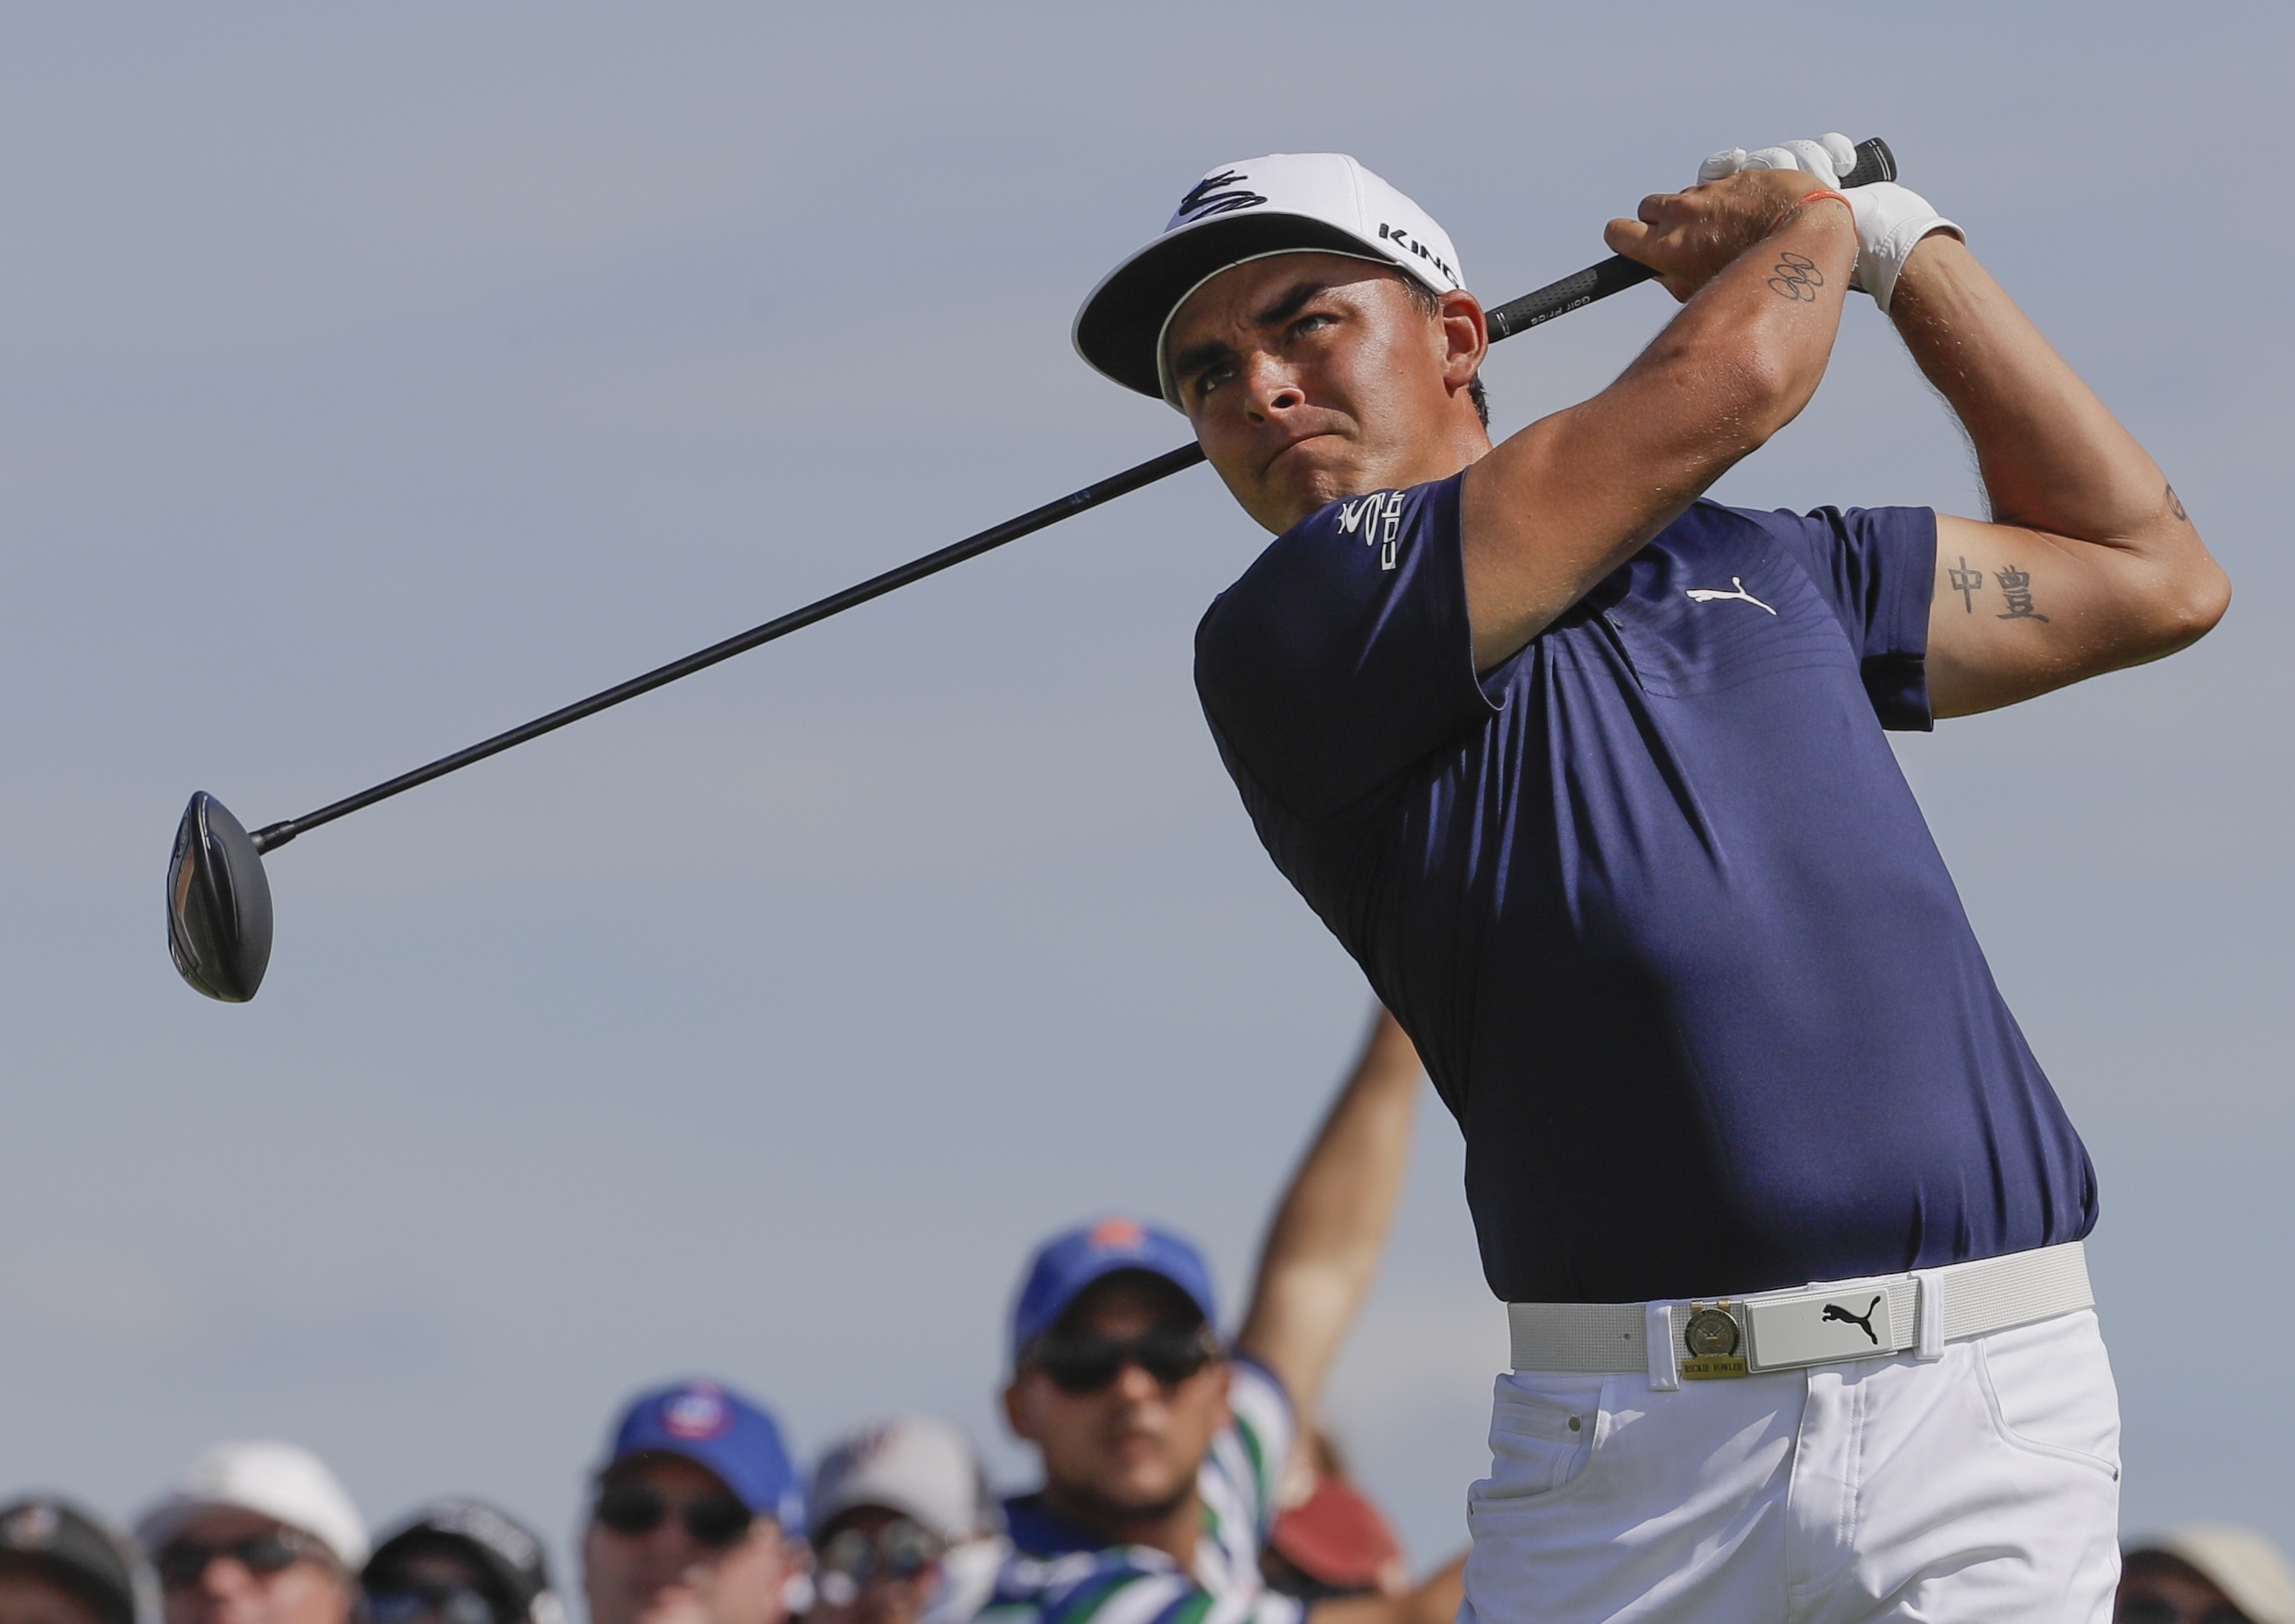 Rickie Fowler hits a drive on the 10th hole during the second round of the U.S. Open golf tournament Friday, June 16, 2017, at Erin Hills in Erin, Wis. (AP Photo/David J. Phillip)